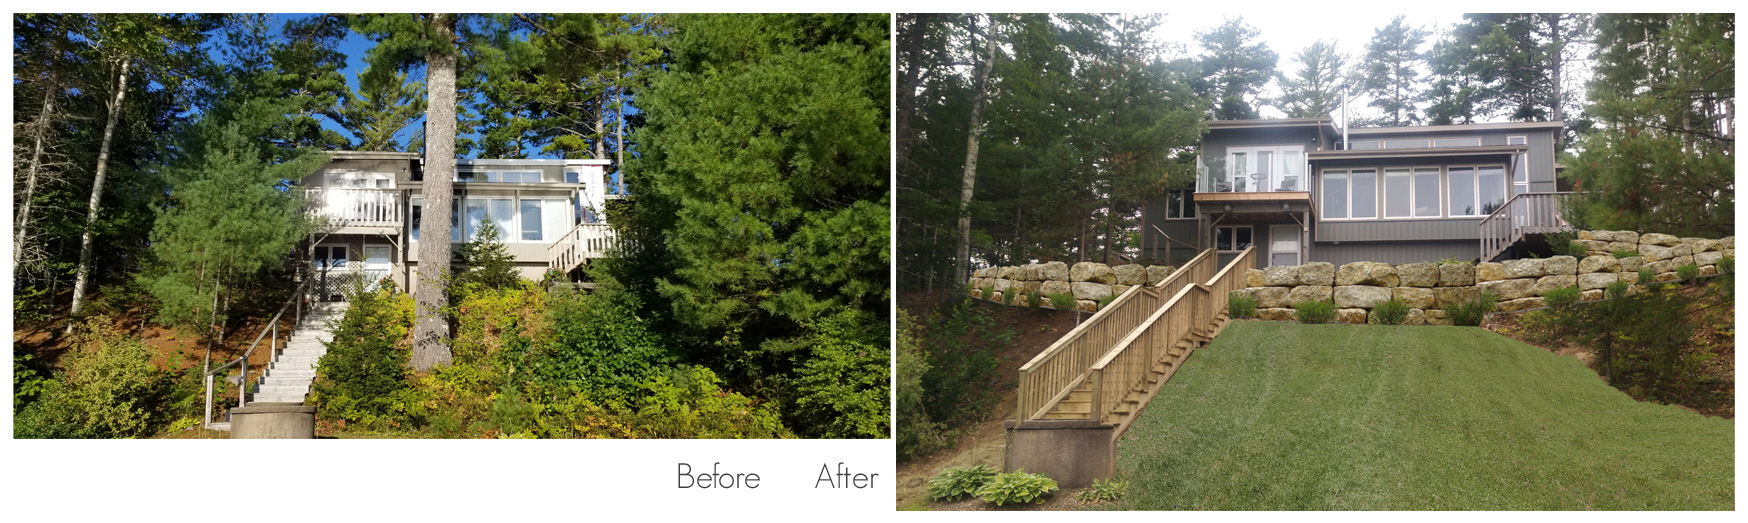 Before and After Siding and Deck Job